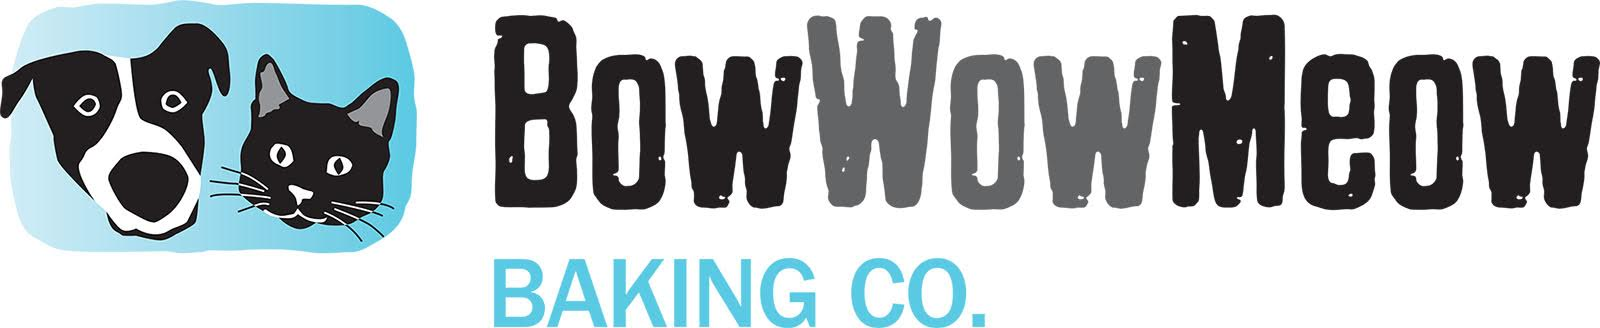 BowWowMeow Baking Co.